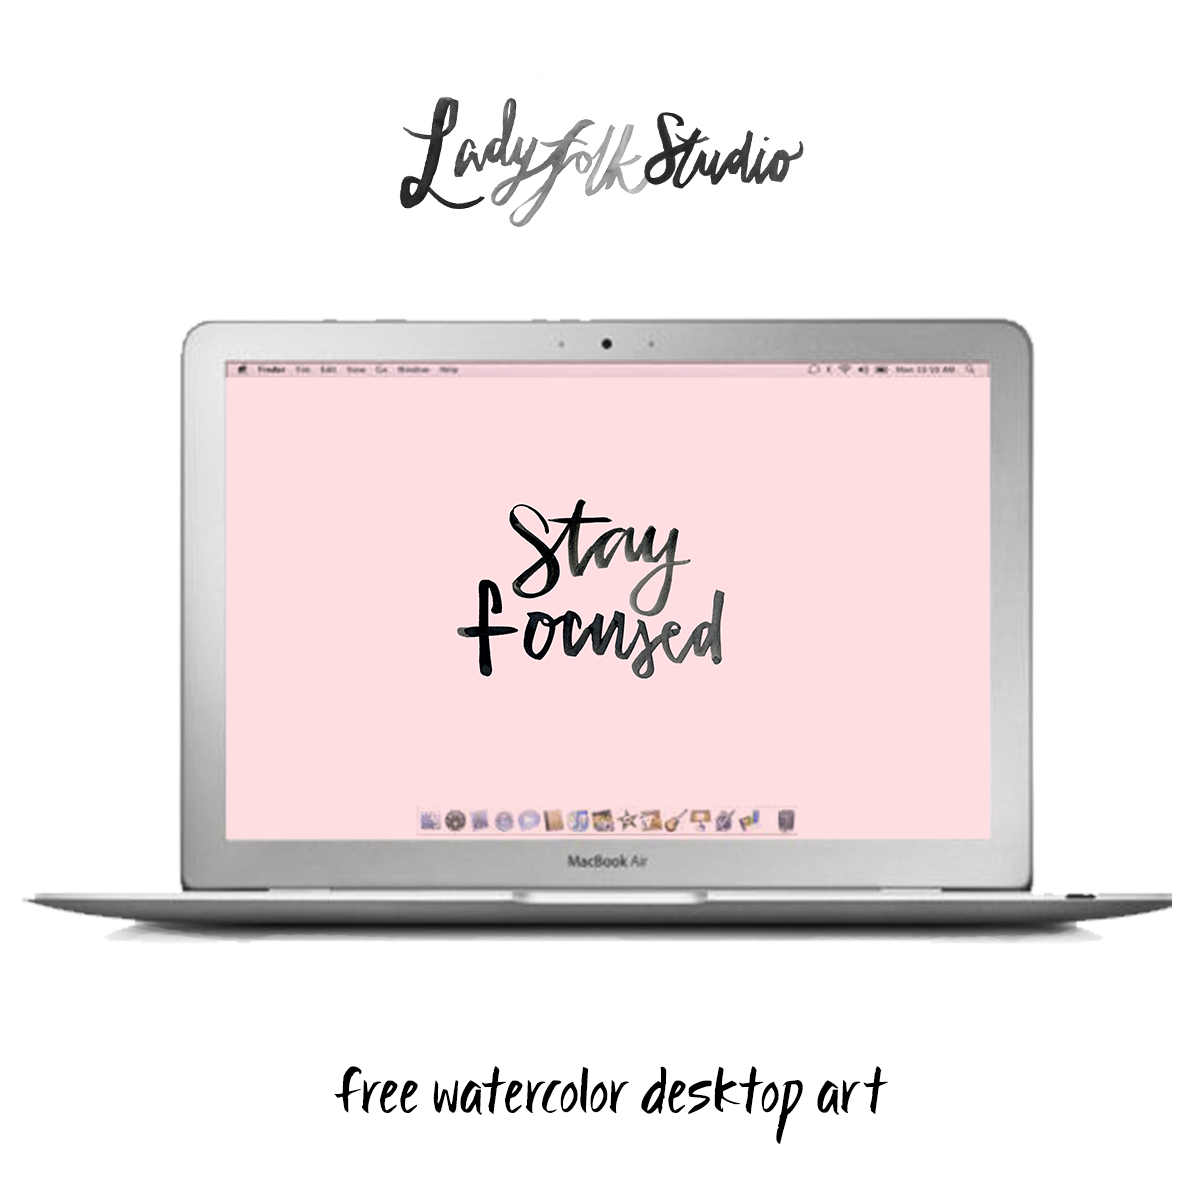 January Desktop Art Free Download from Ladyfolk Studio, Laguna Beach